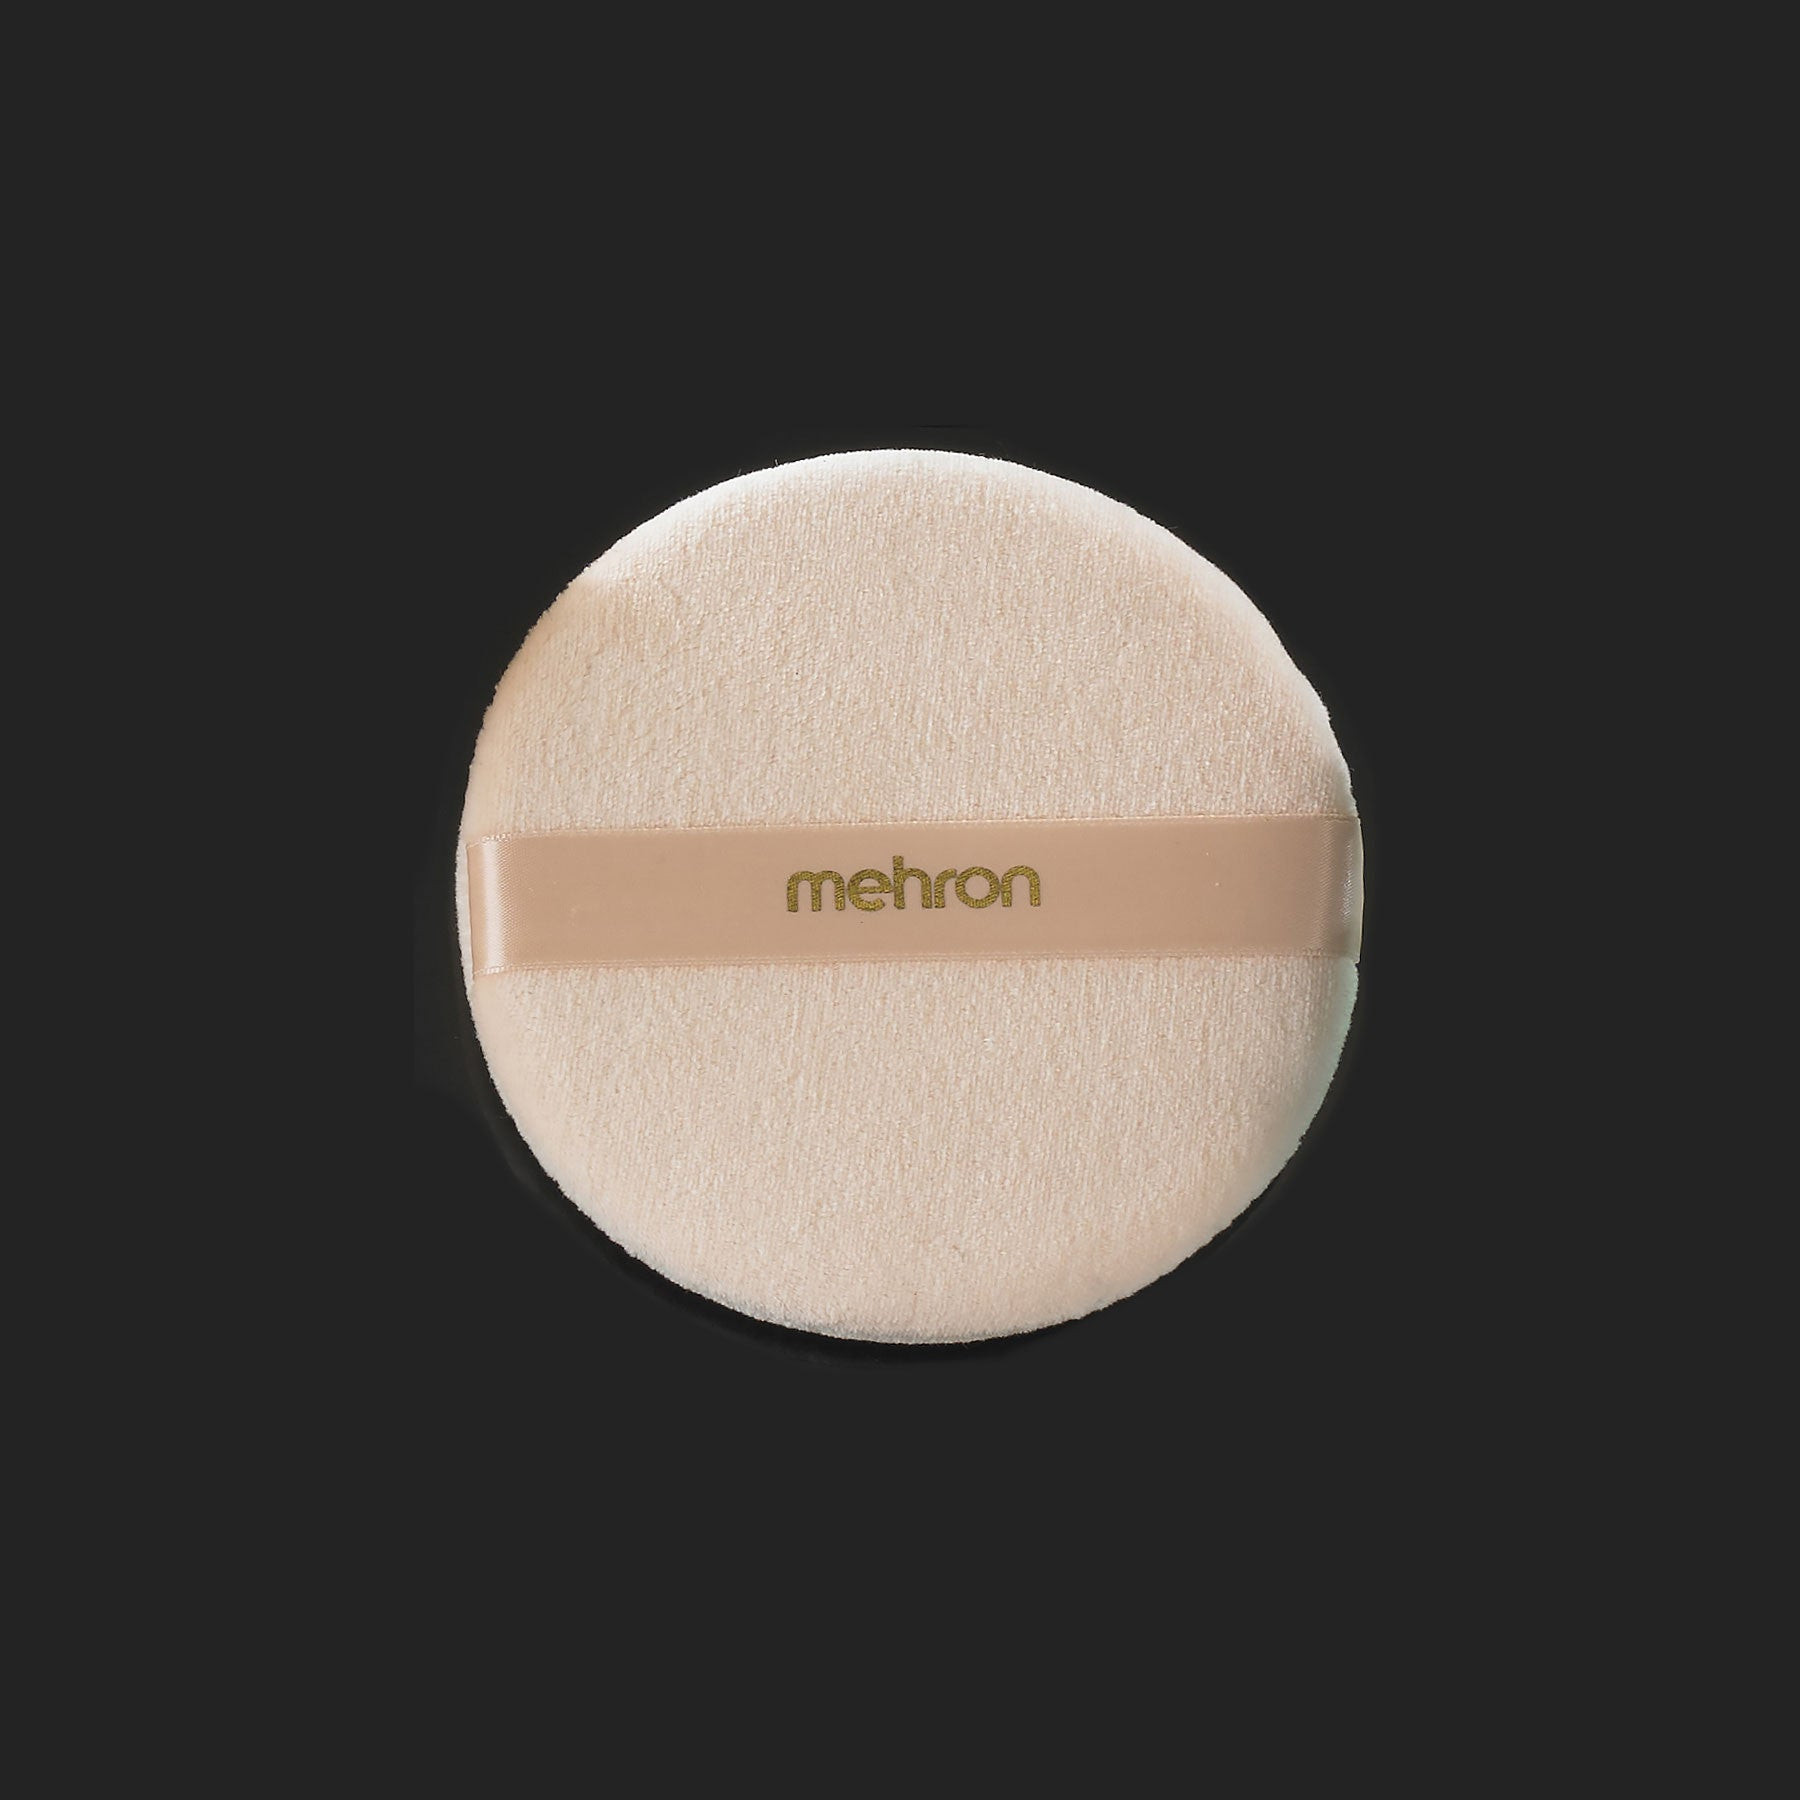 Mehron Large Powder Puff - Red Carpet FX - Professional Makeup